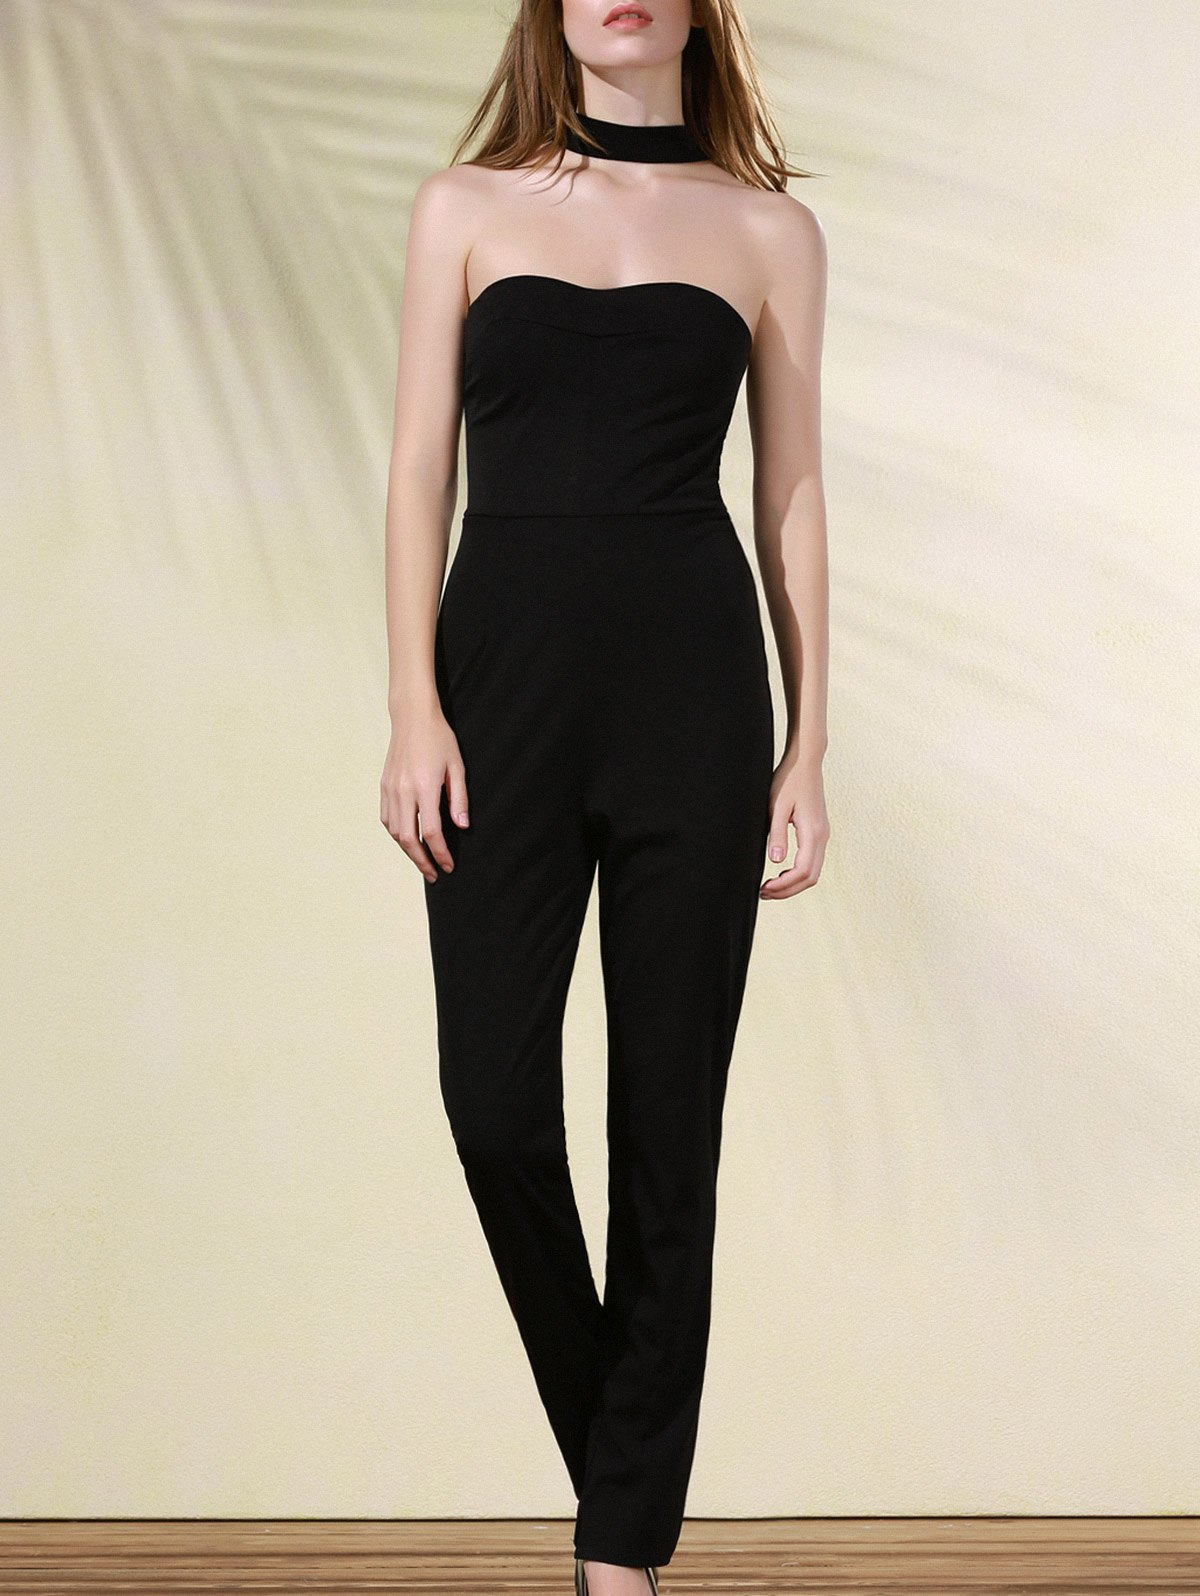 Stand Neck Cut Out Solid Color Jumpsuit